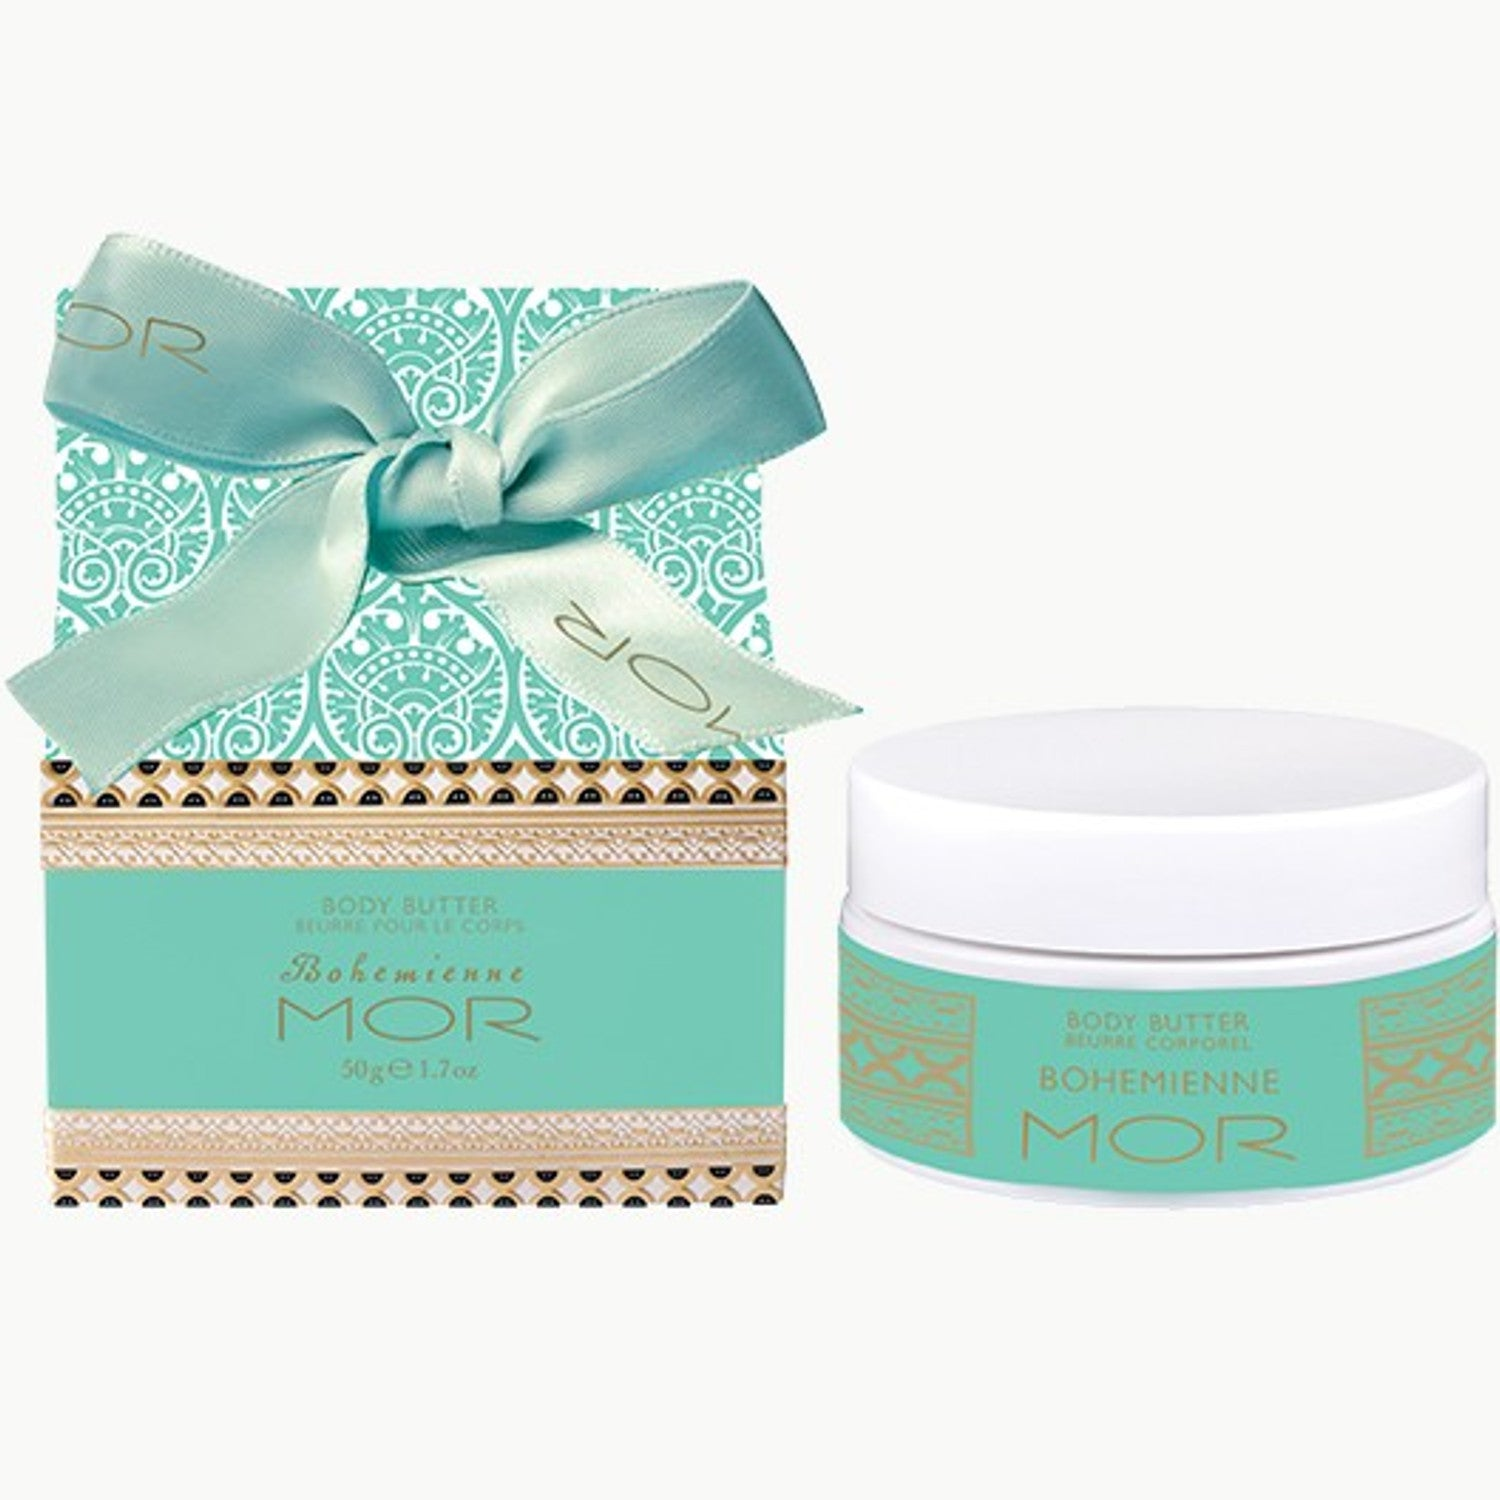 MOR Boutique Body Butter - Bohemienne